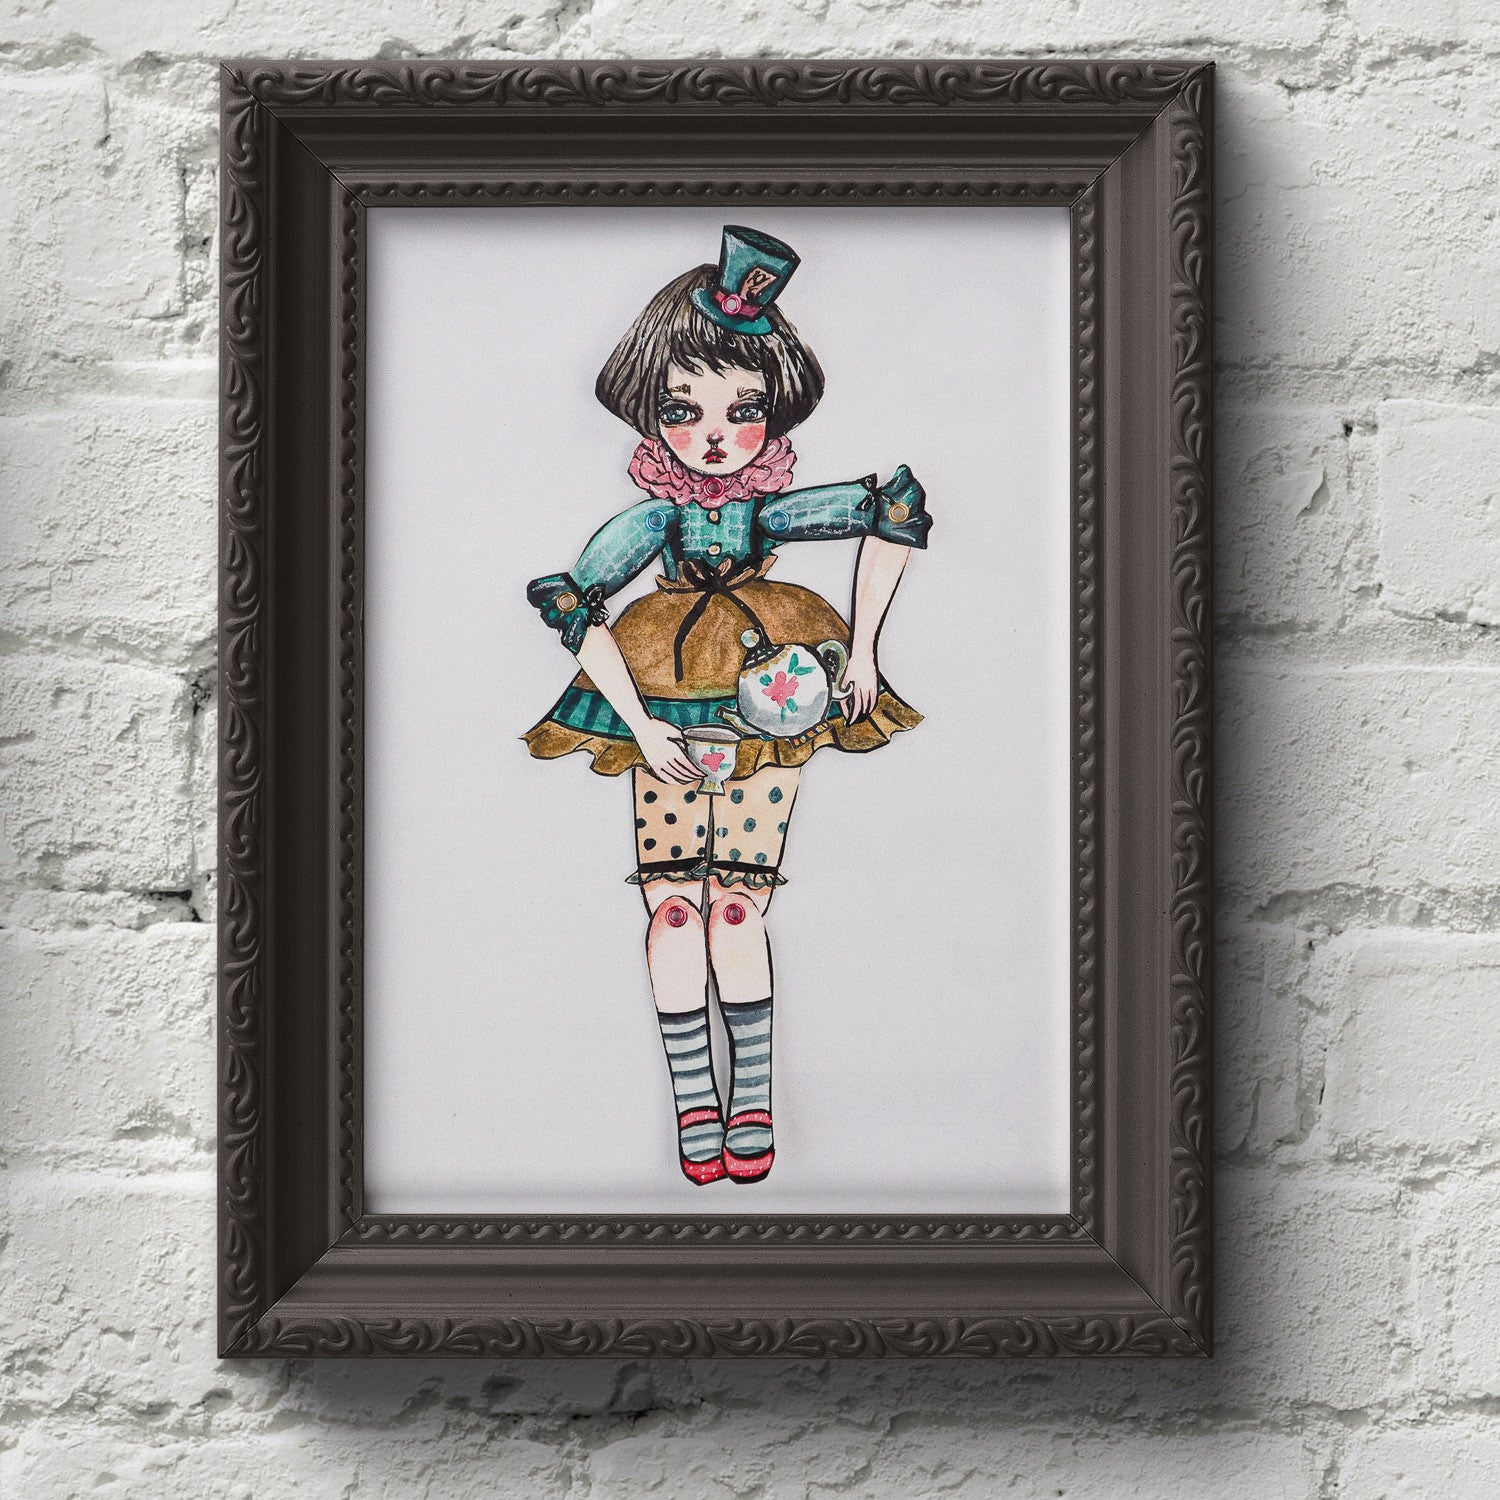 The mad hatter original Alice in wonderland watercolor painting danita